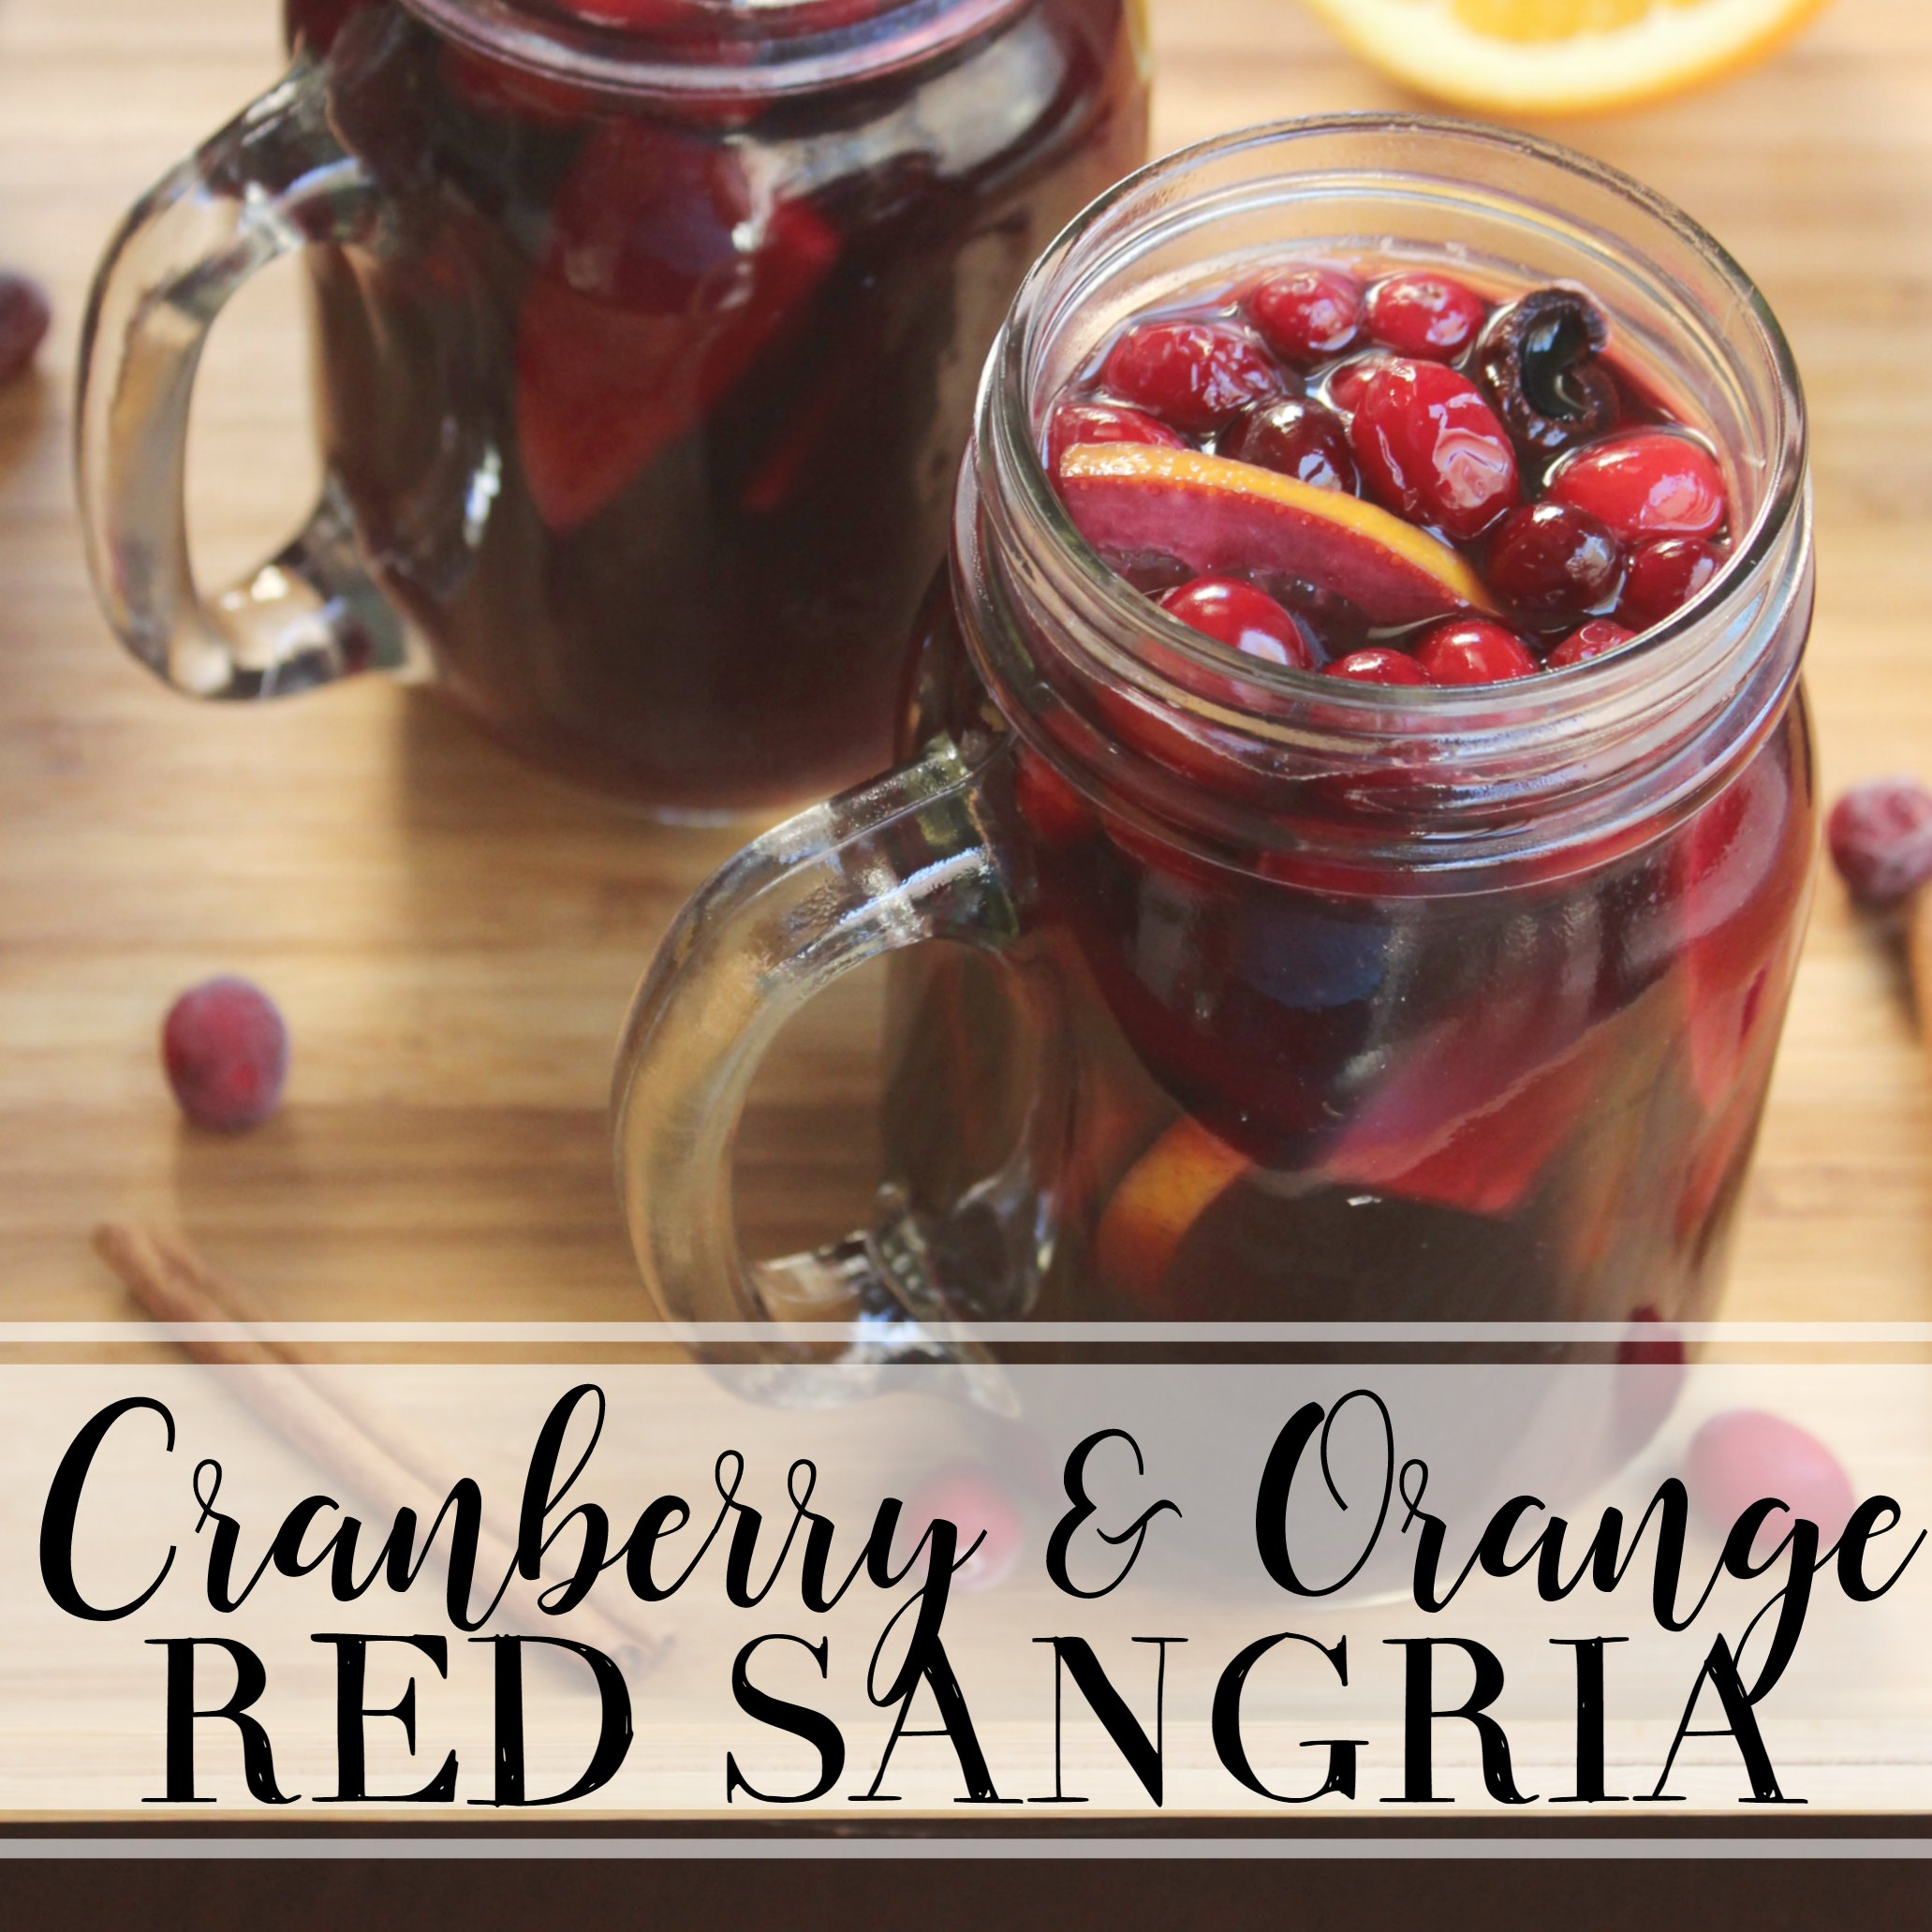 Spiced Cranberry Orange Red Sangria - Gettin' My Healthy On